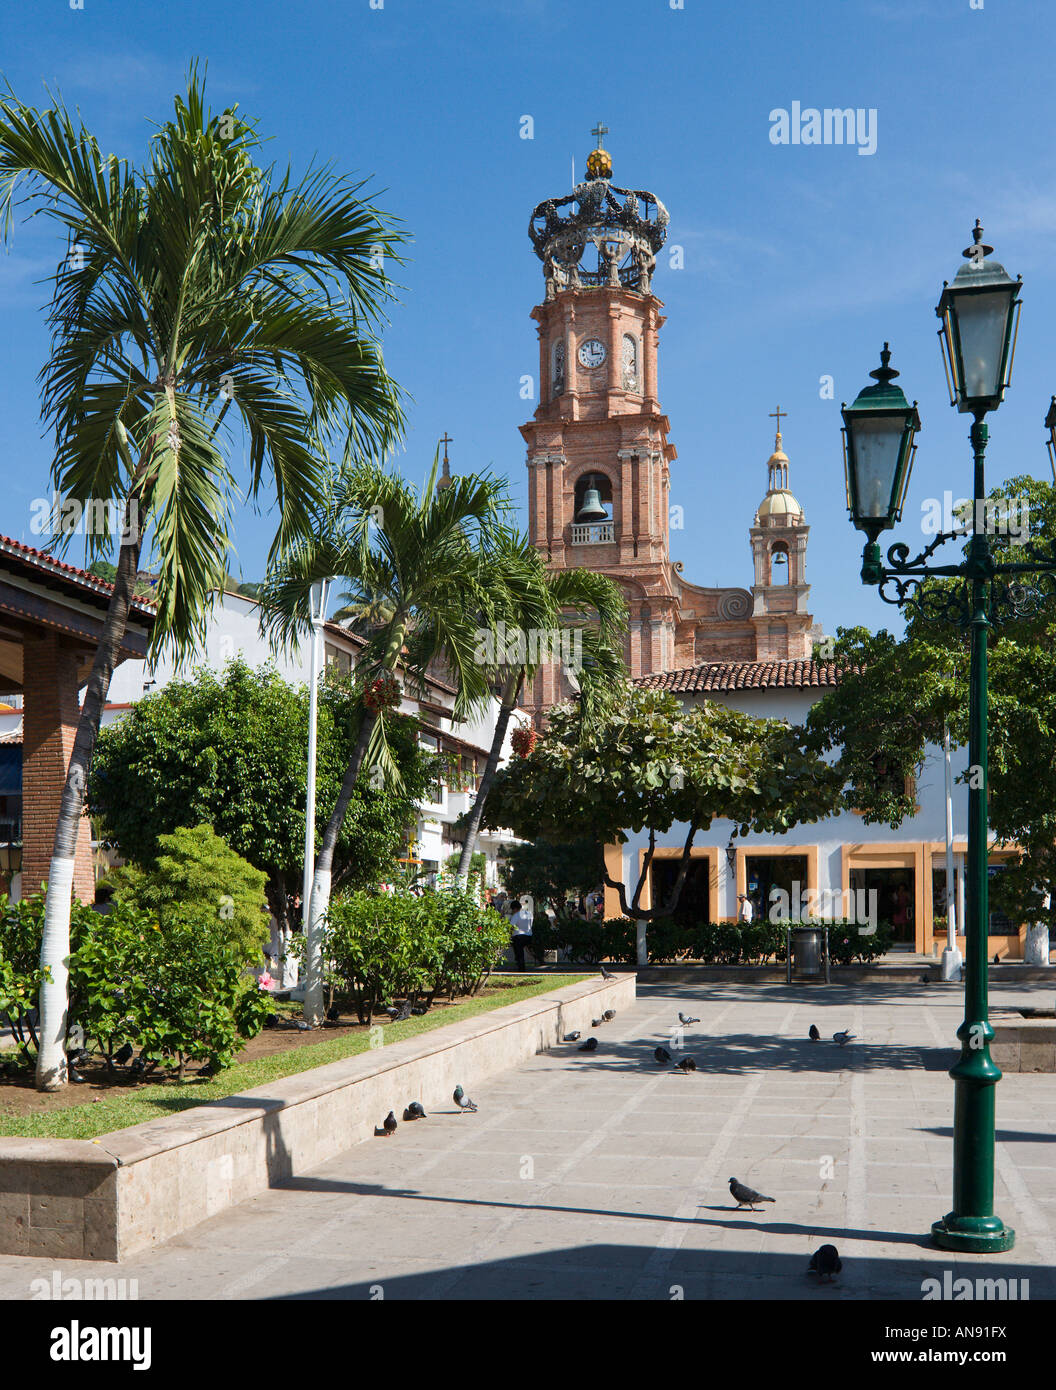 Cathedral of Our Lady of Guadalupe from Main Square (Plaza Principal), Old Town, Puerto Vallarta, Jalisco, Mexico - Stock Image